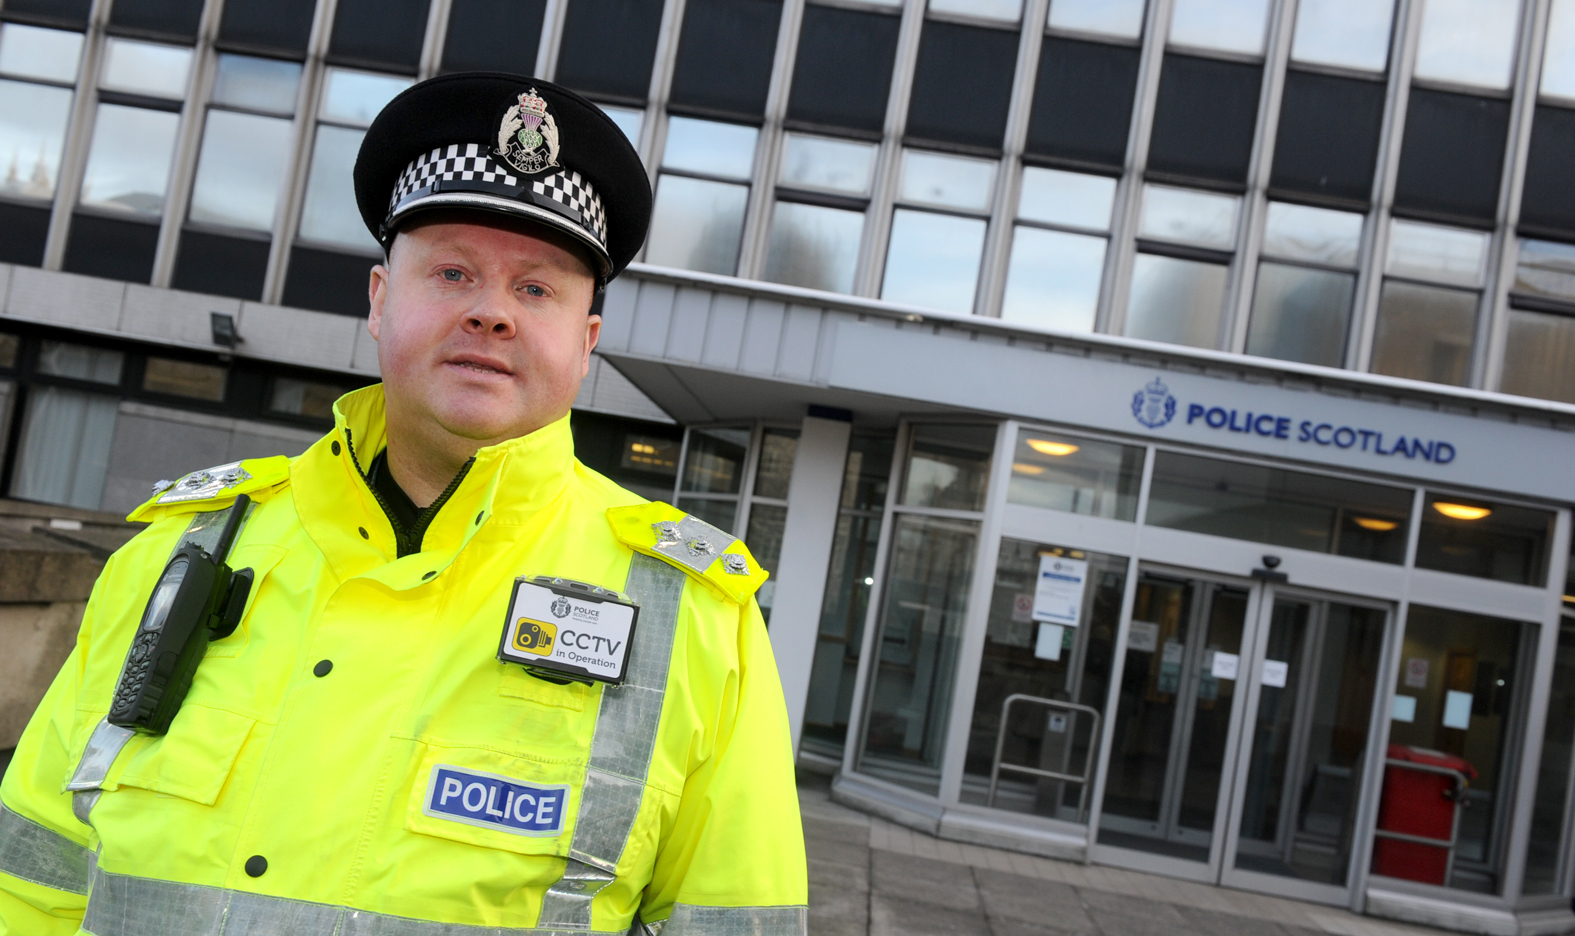 Chief Inspector Murray Main wants people to act responsibly.